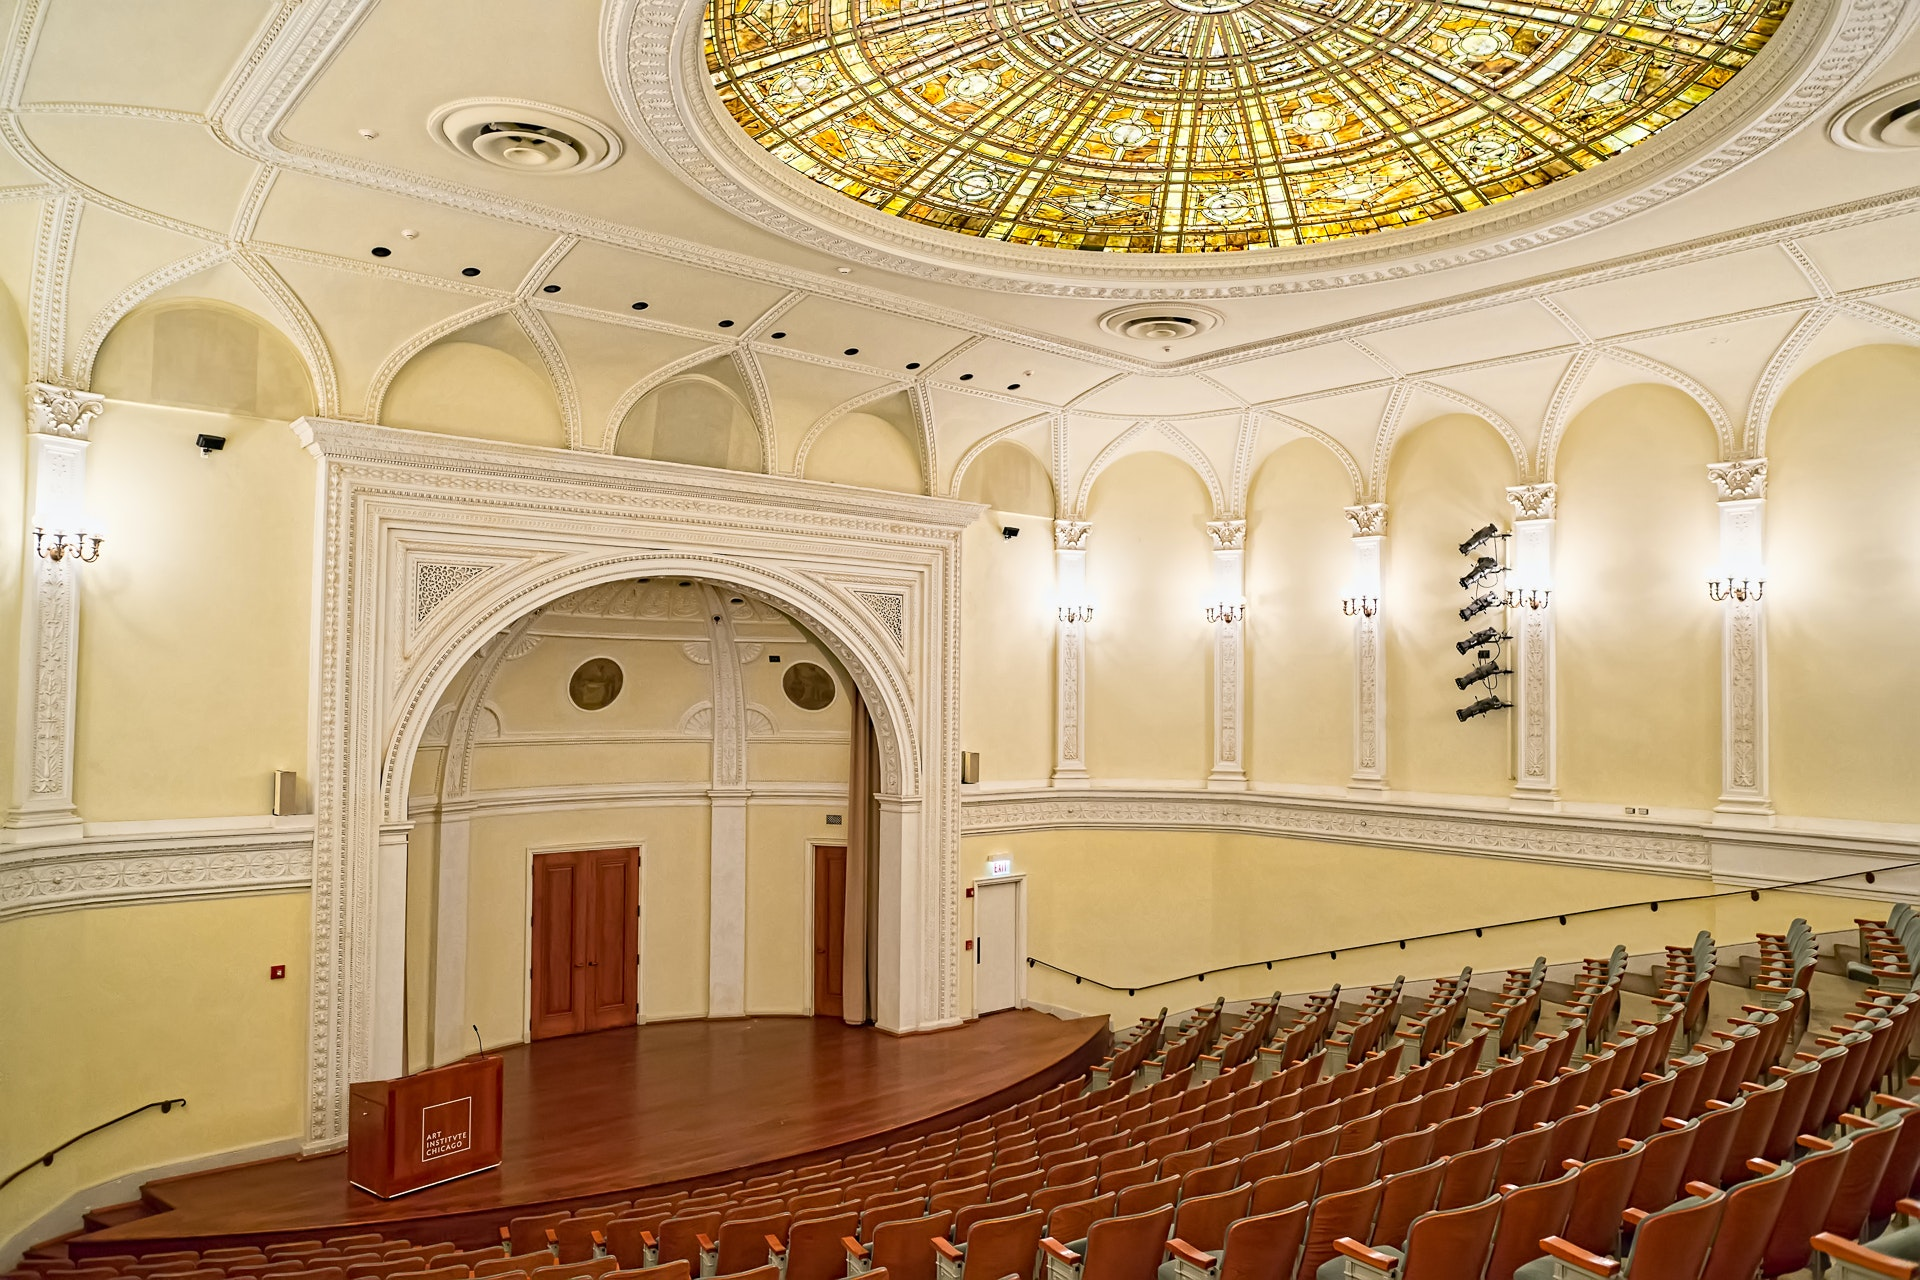 A large auditorium with a yellow glass dome ceiling